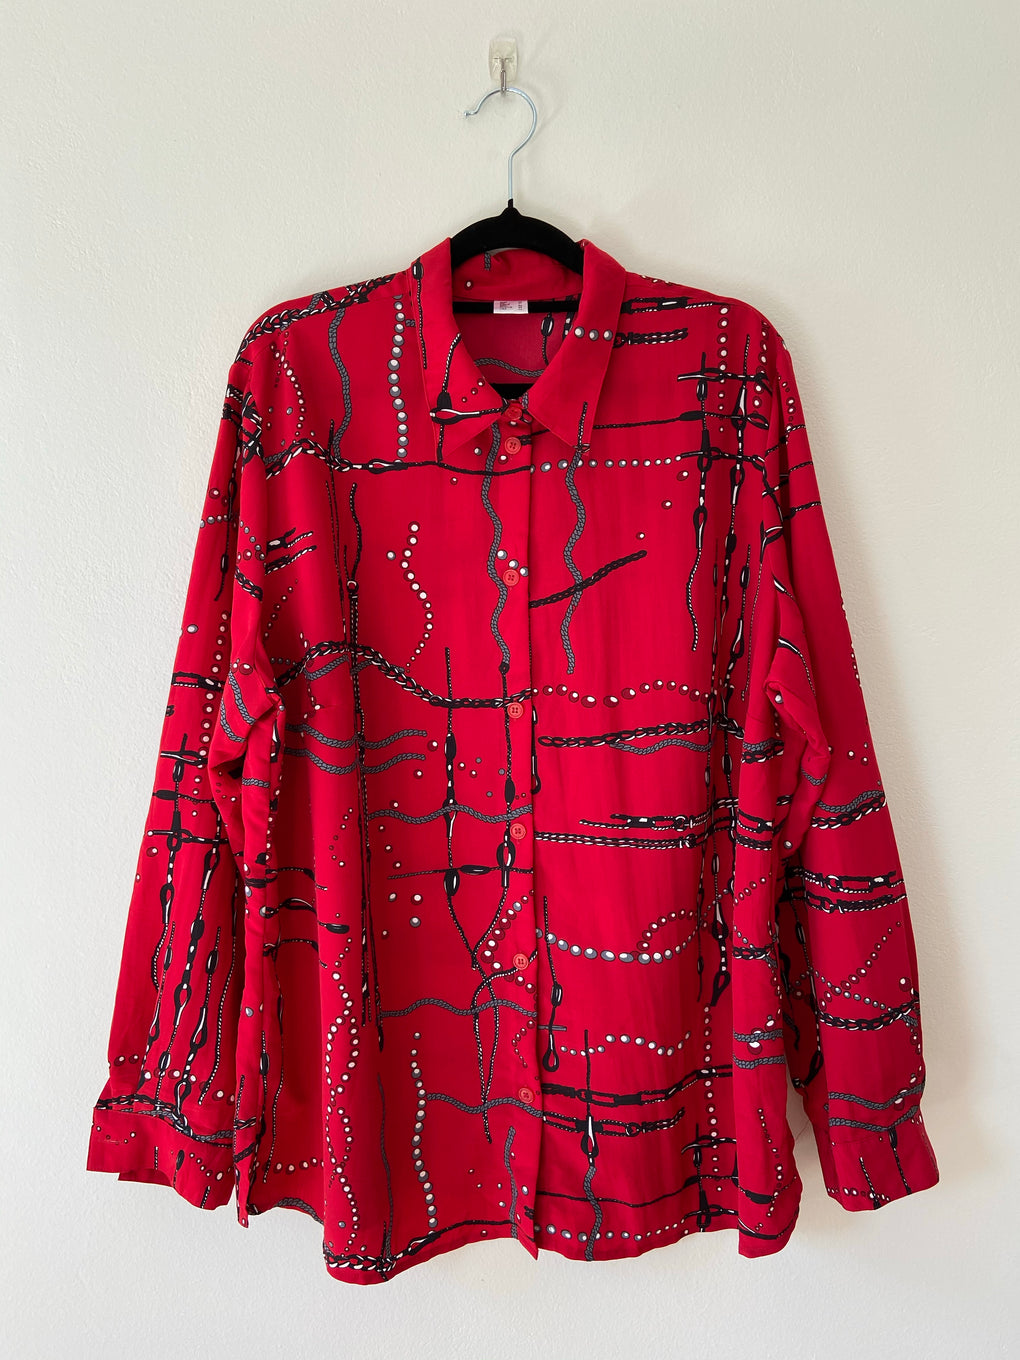 Crimson Pearls L/S Shirt - FROTHLYF